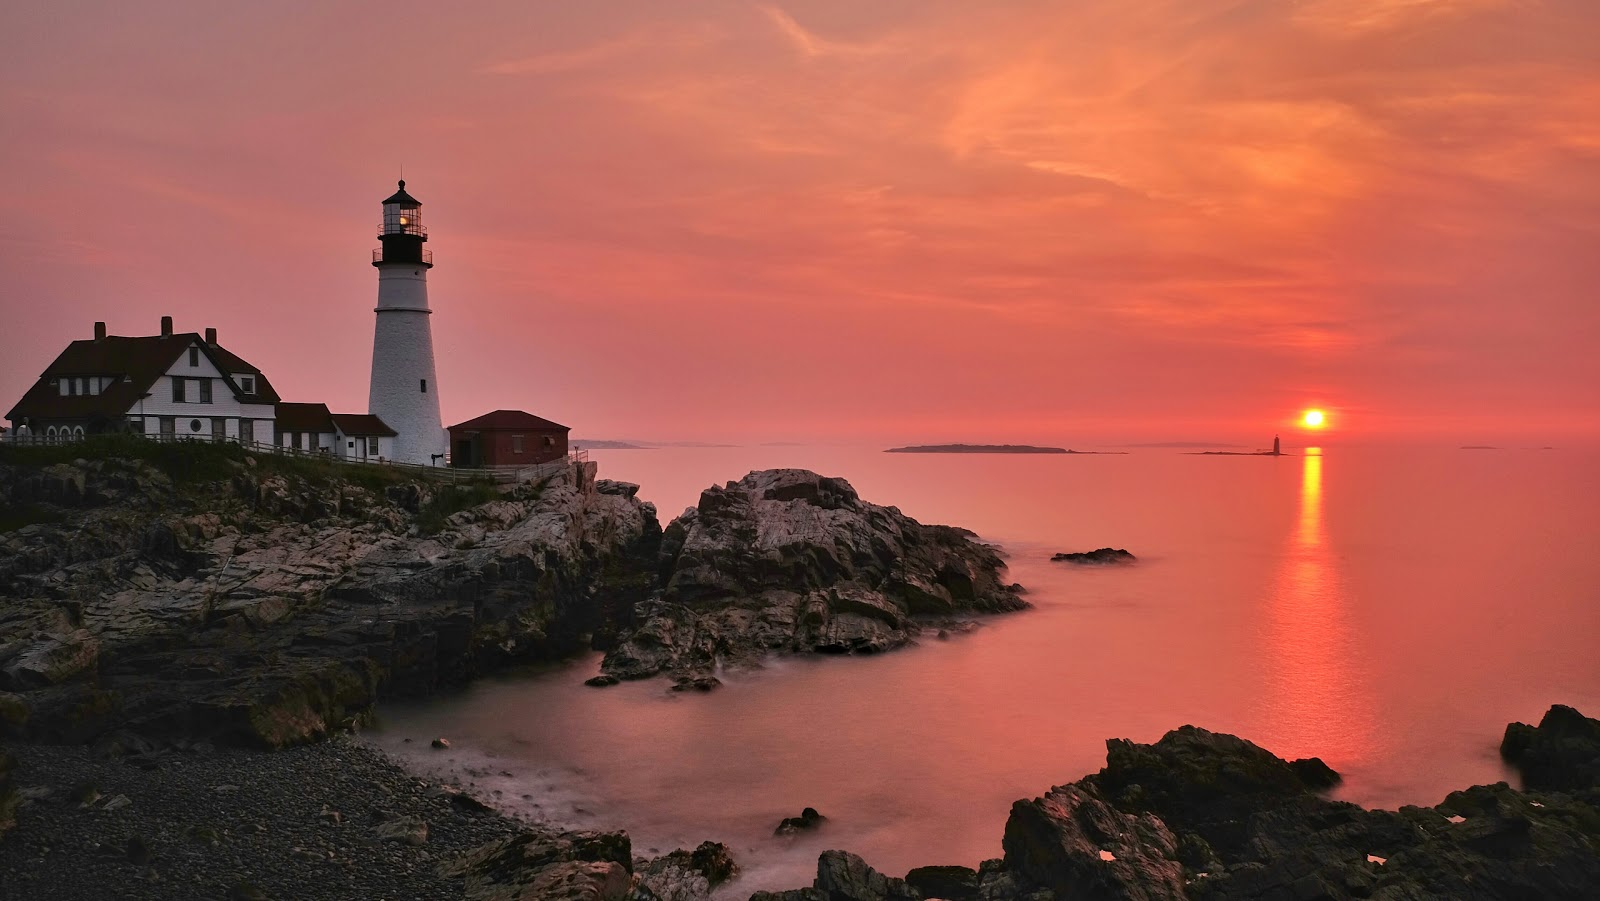 cape elizabeth Participate in formulation of the comprehensive plan the comprehensive plan 2019 committee welcomes public participation meetings and agendas are posted on the comprehensive plan 2019 committee page, where you will also find an invitation to join the online discussion forum.